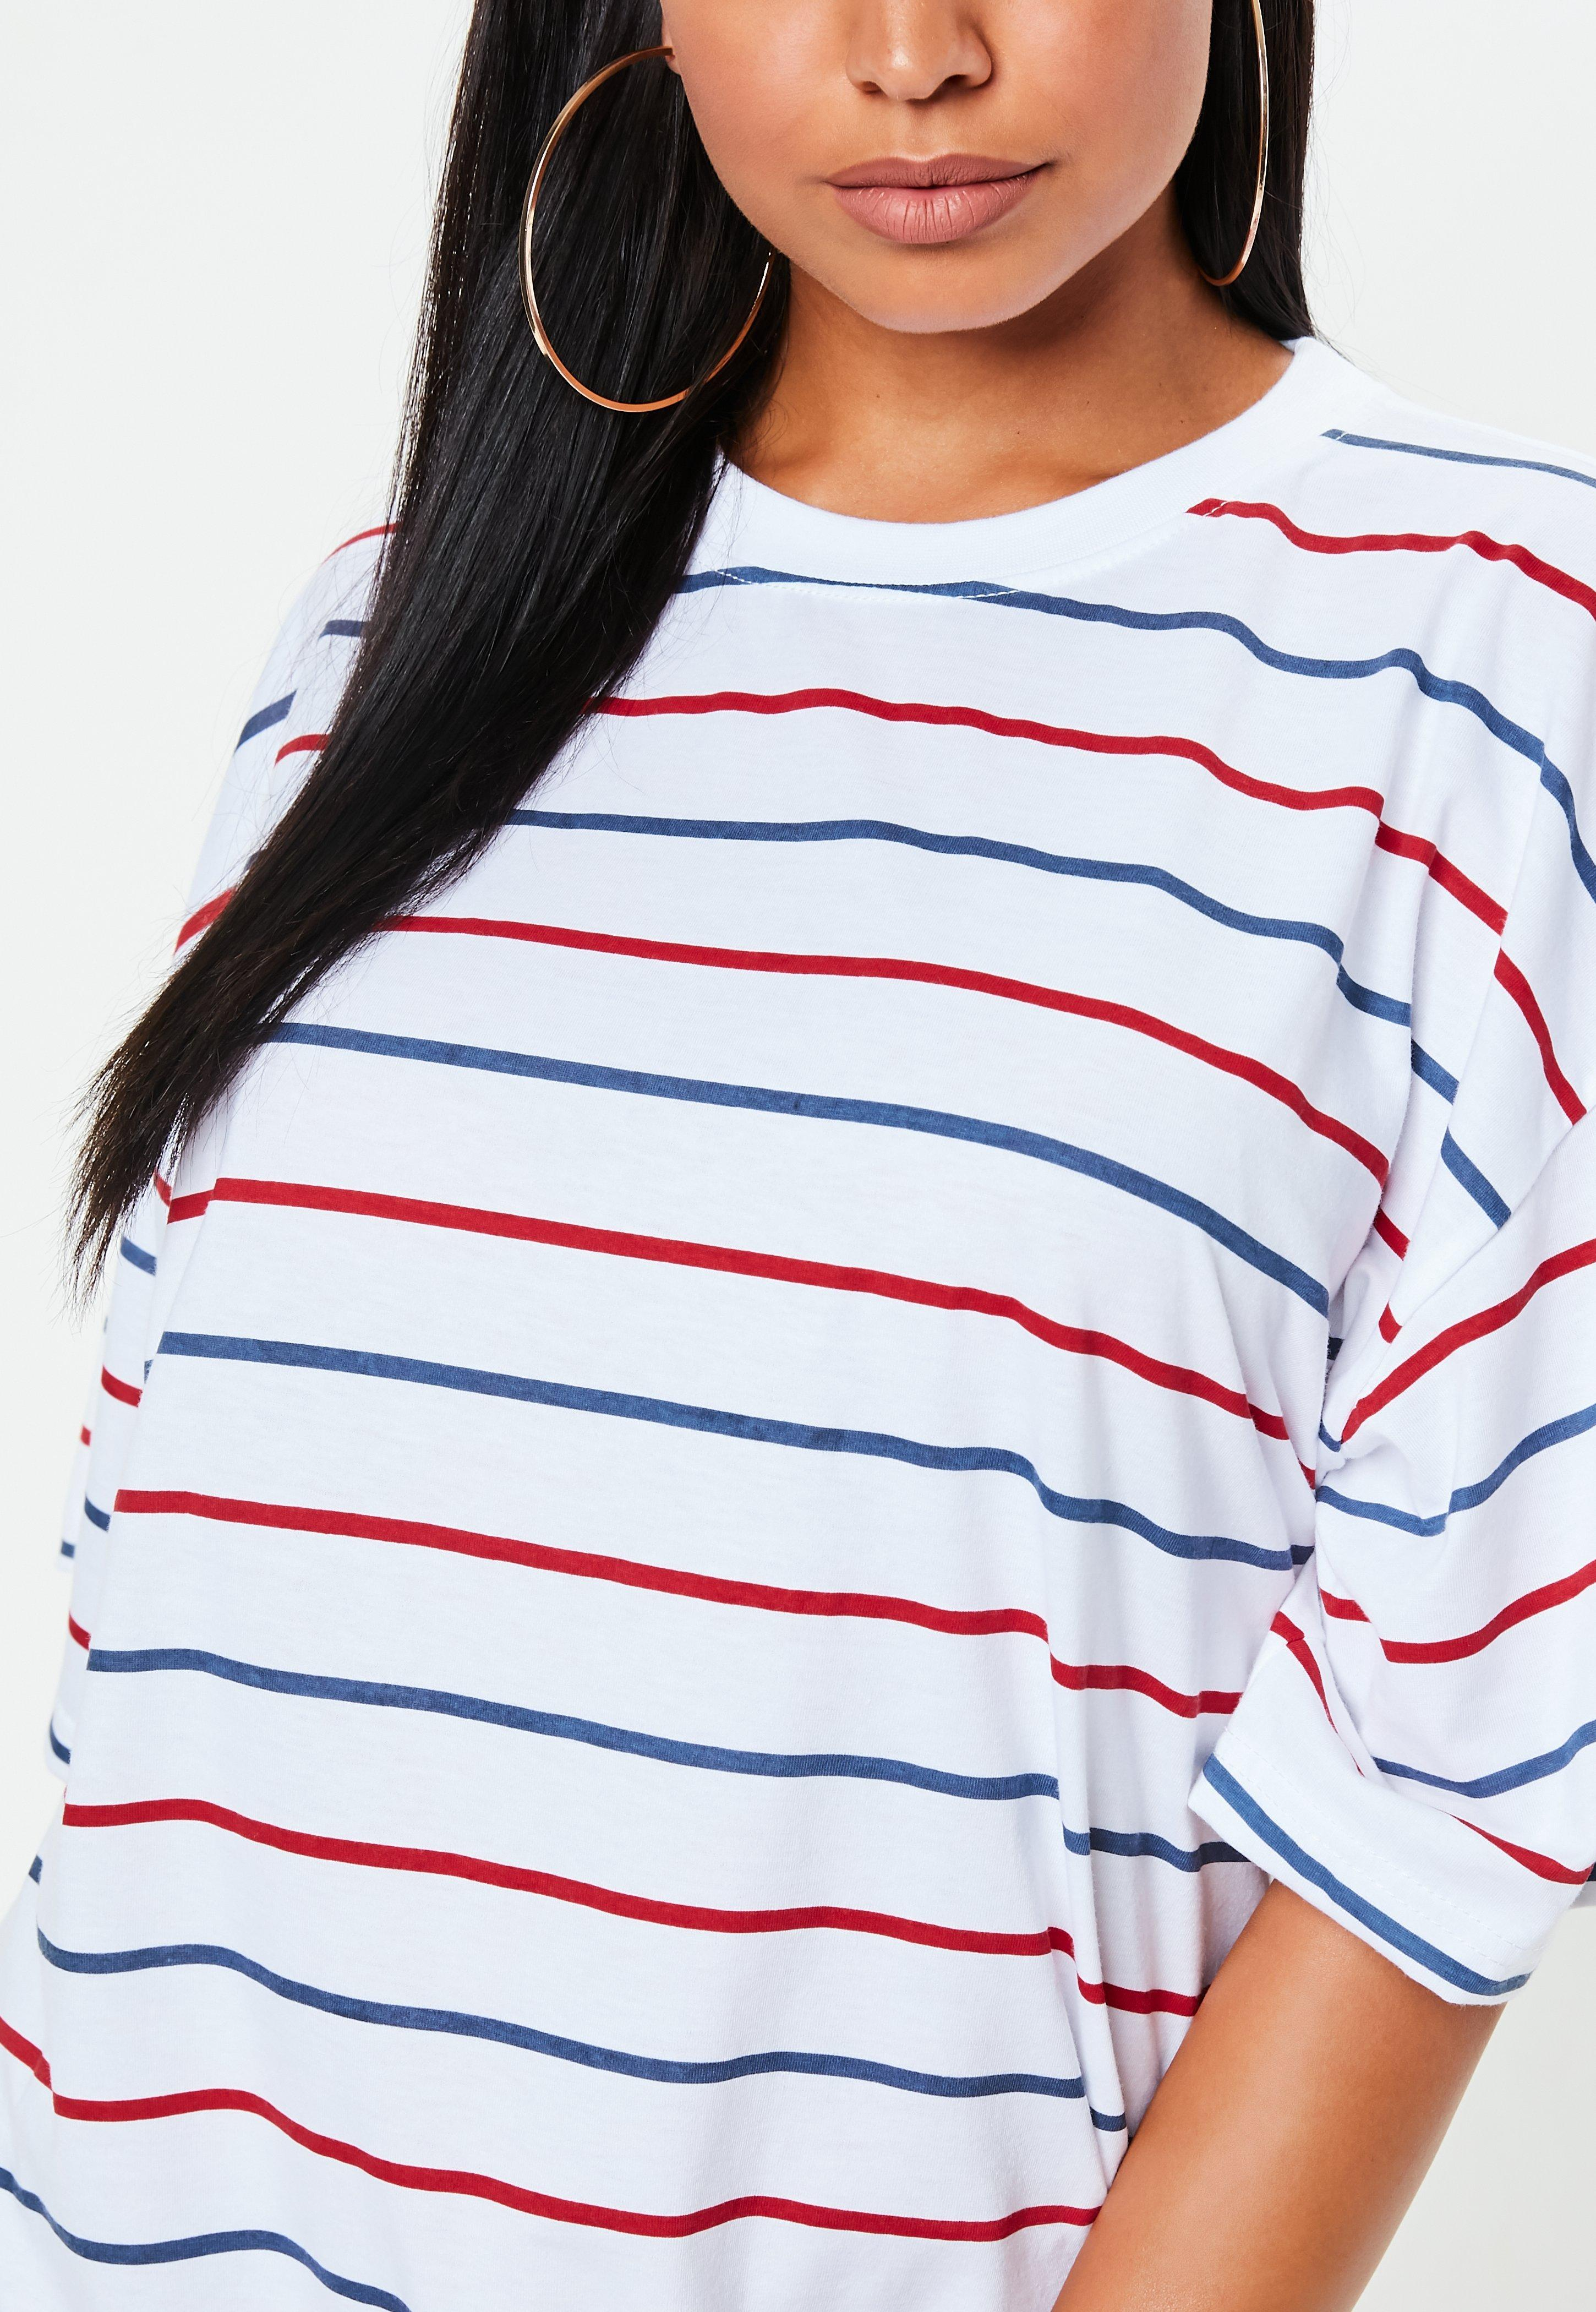 Lyst - Missguided White Oversized Blue And Red Striped T Shirt Dress ... bf128bdc5